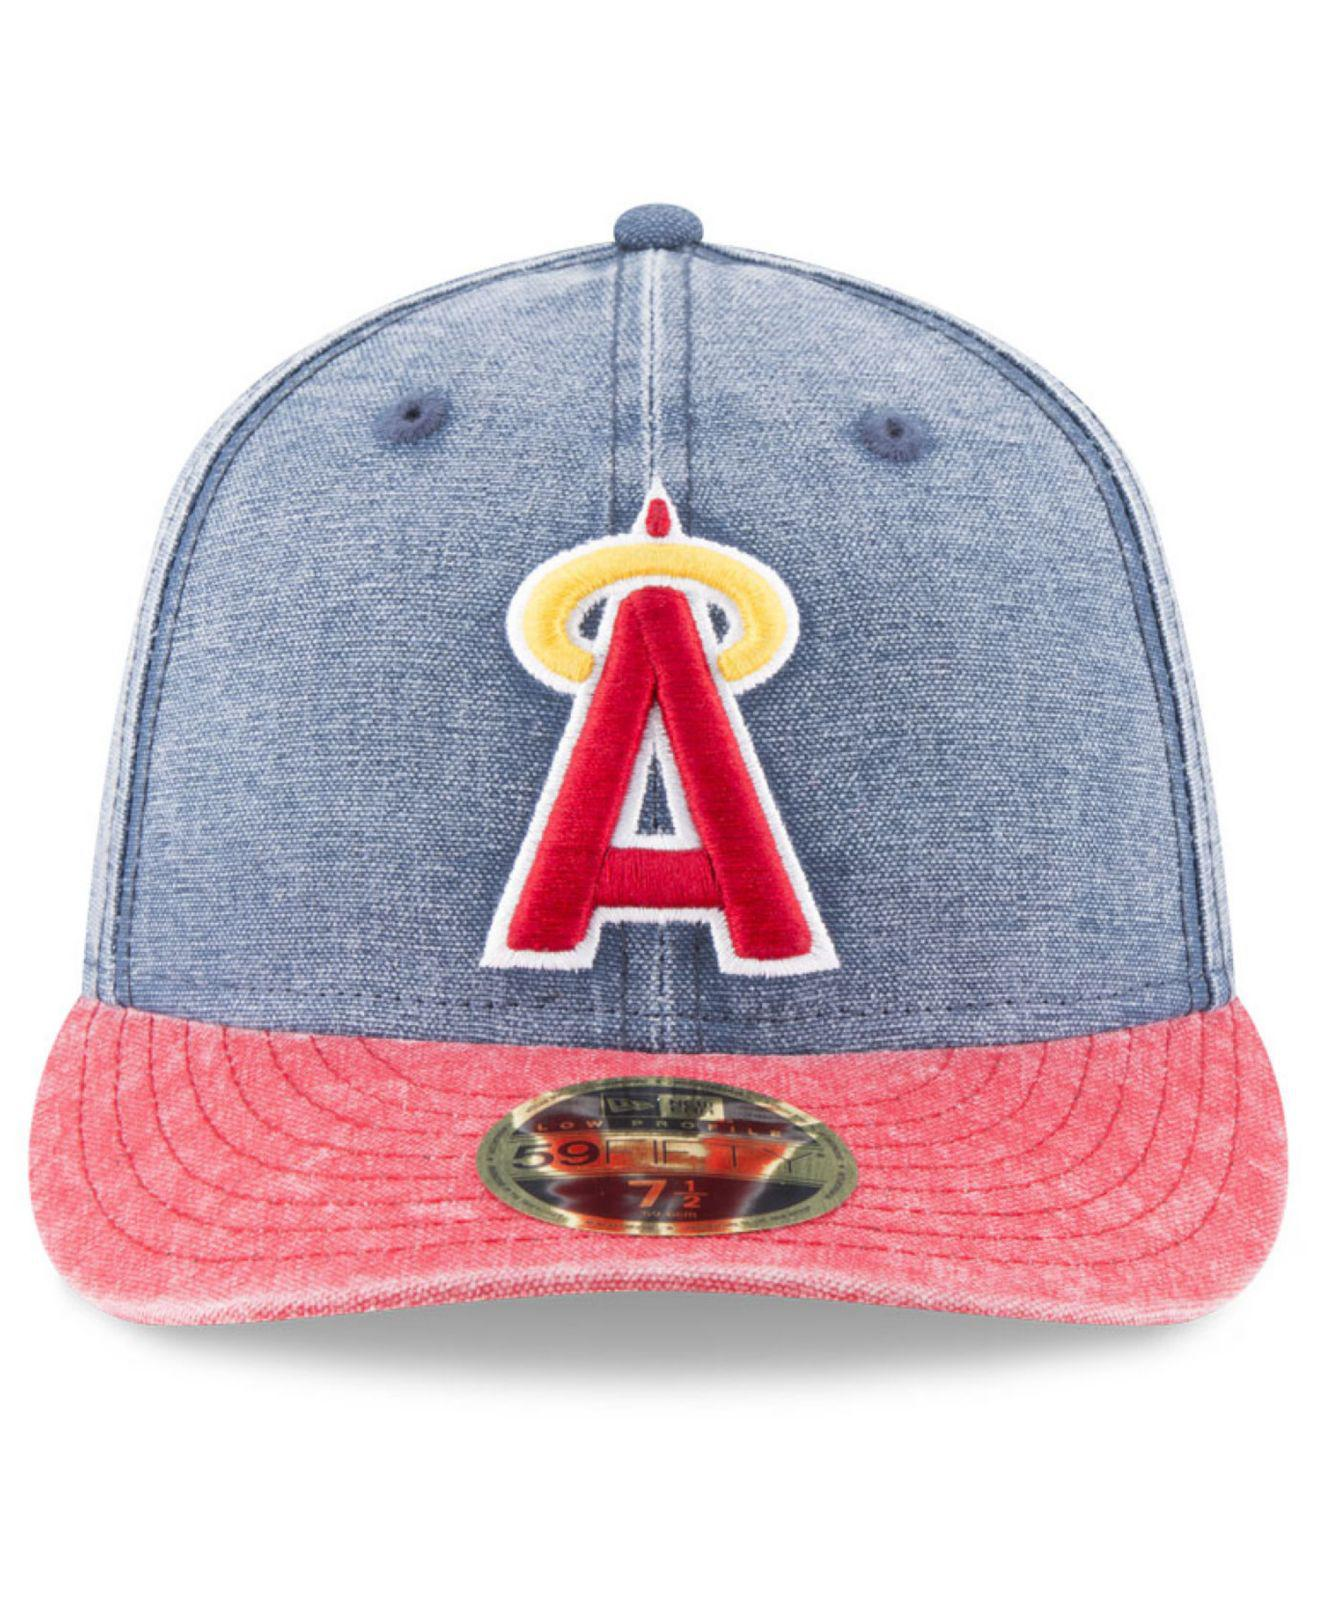 new products 20b0e 786fc ... new era mlb coop classic 39thirty cap aadff 20e40  store lyst ktz los  angeles angels of anaheim 59fifty bro cap in blue for men 38b25